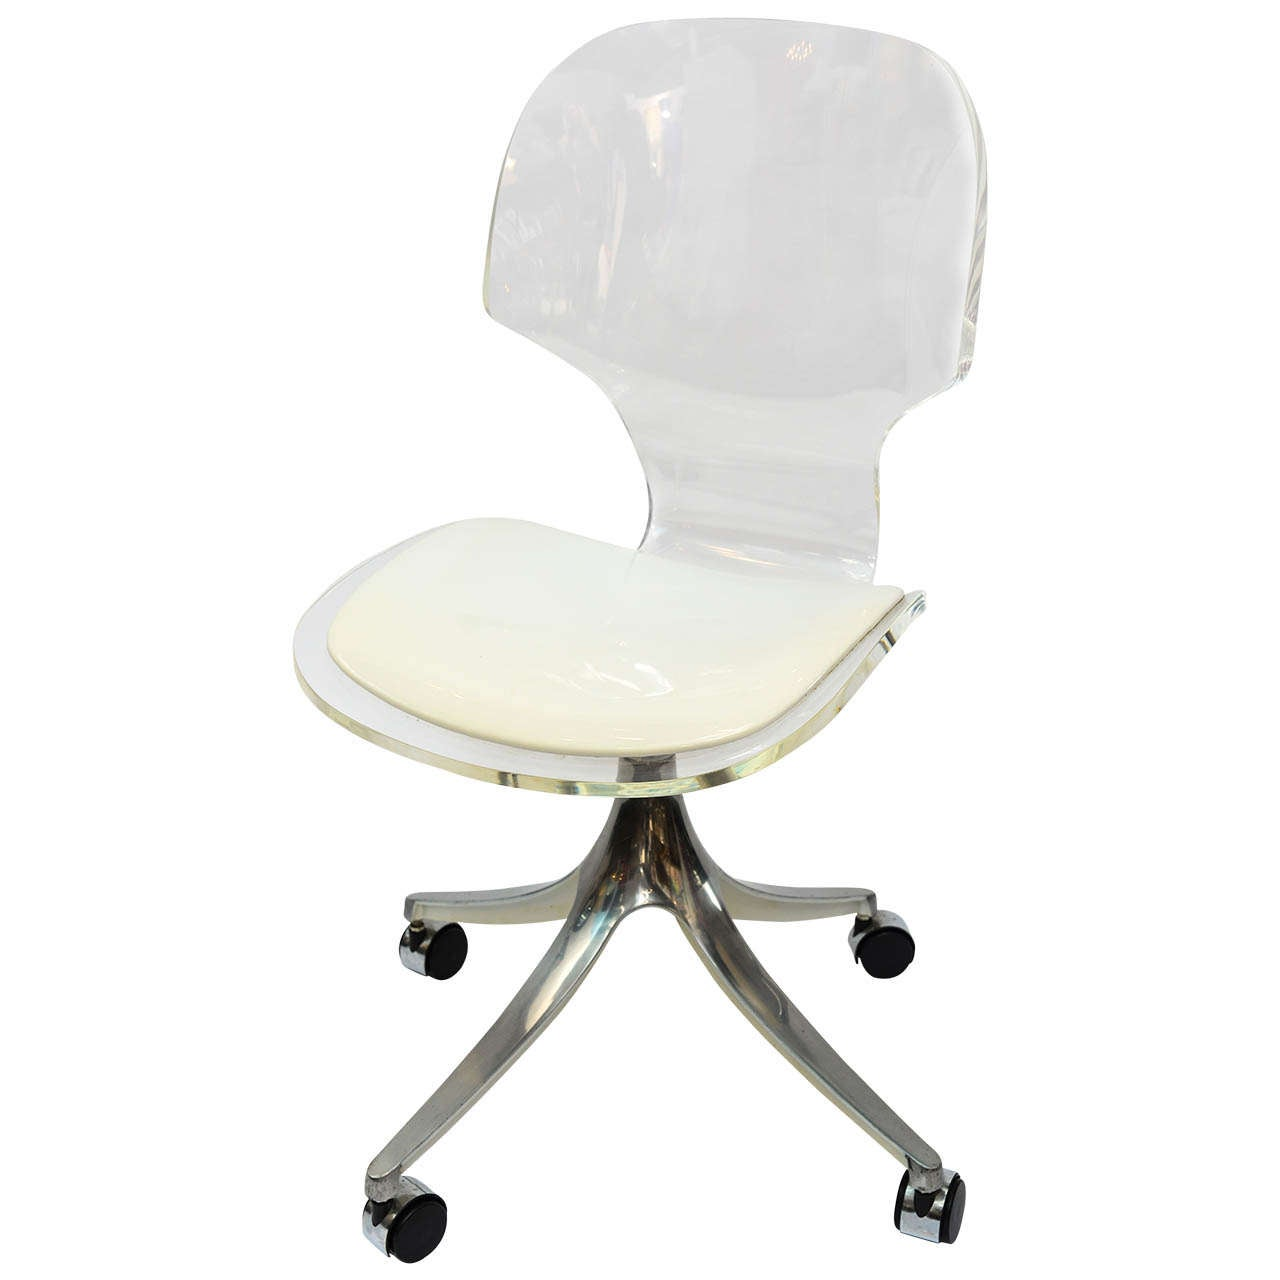 plastic see through chair cheap wedding cover rentals stunning 1960 39s lucite desk on chrome swivel base at